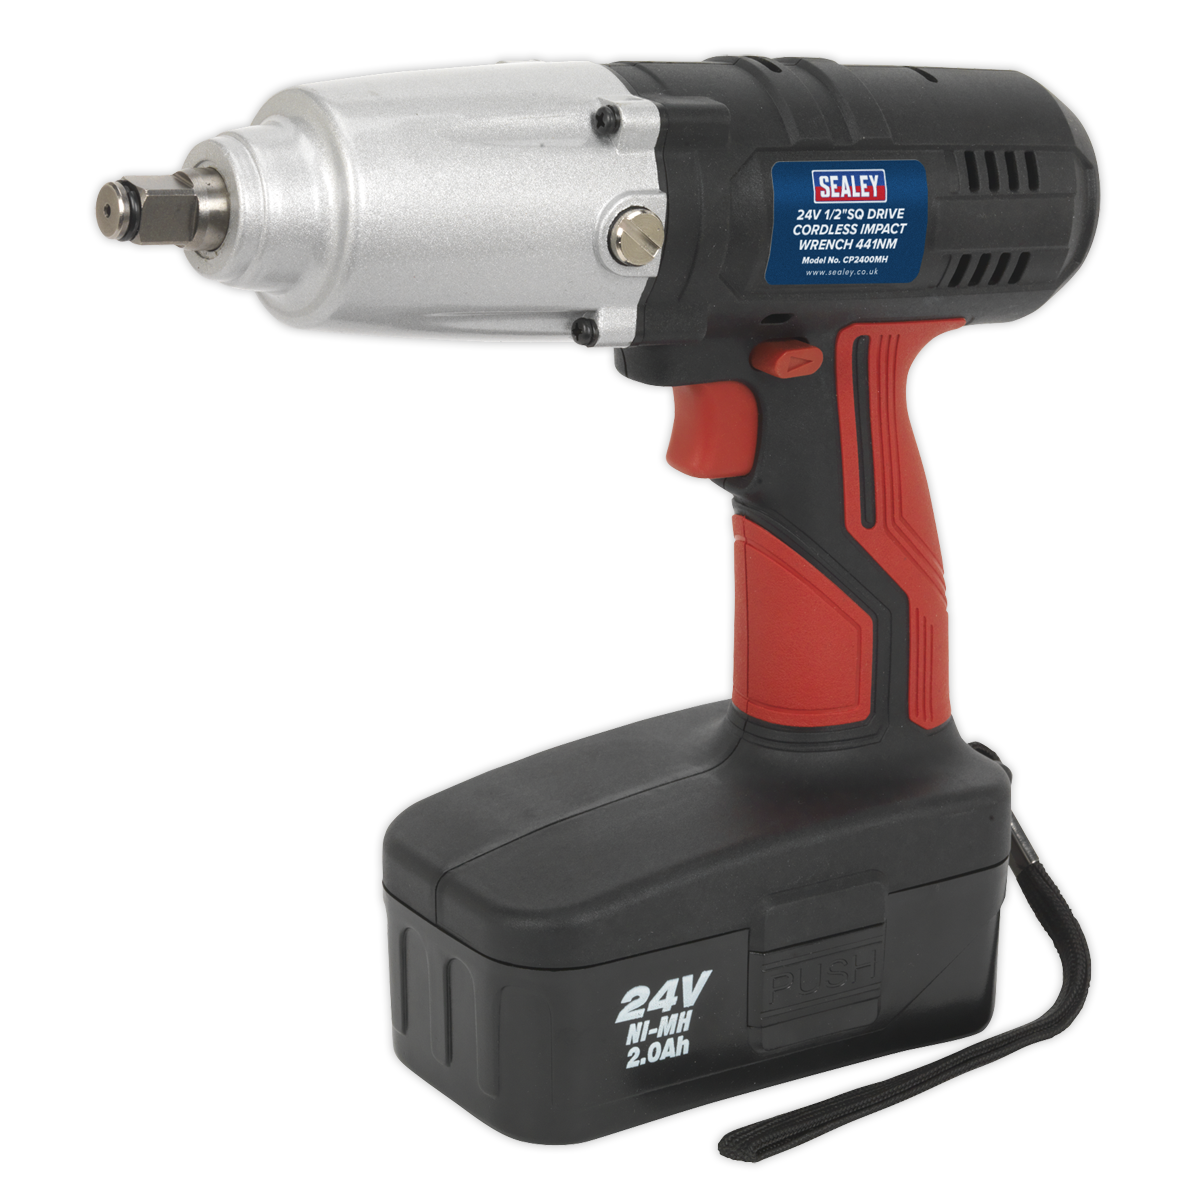 Cordless Impact Wrench 24V 2Ah Ni-MH 1 2 Sq Drive 441Nm   SEALEY CP2400MH by Sea